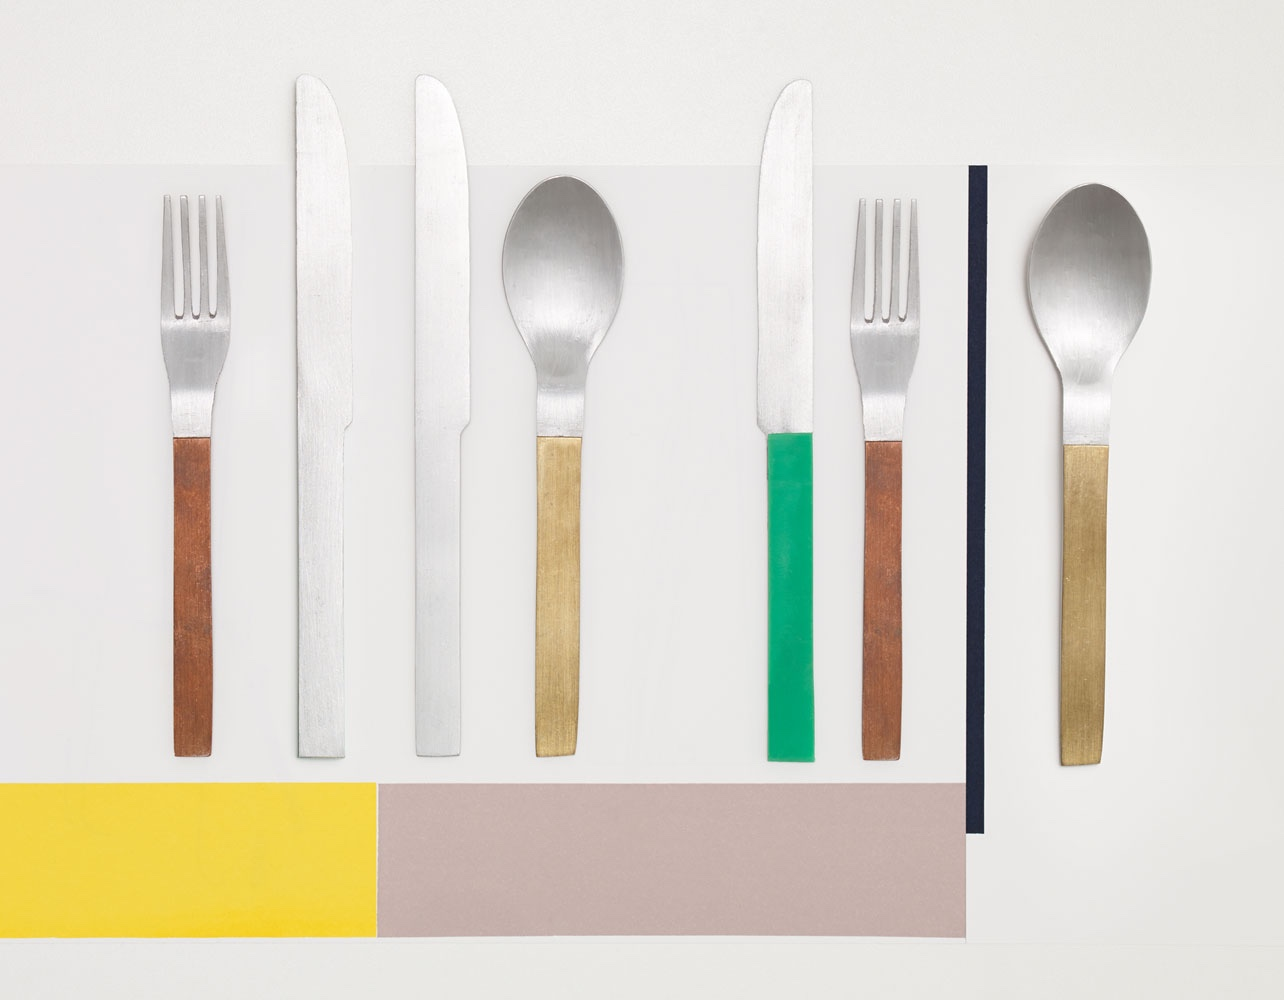 Cutlery forvalerie_objects.